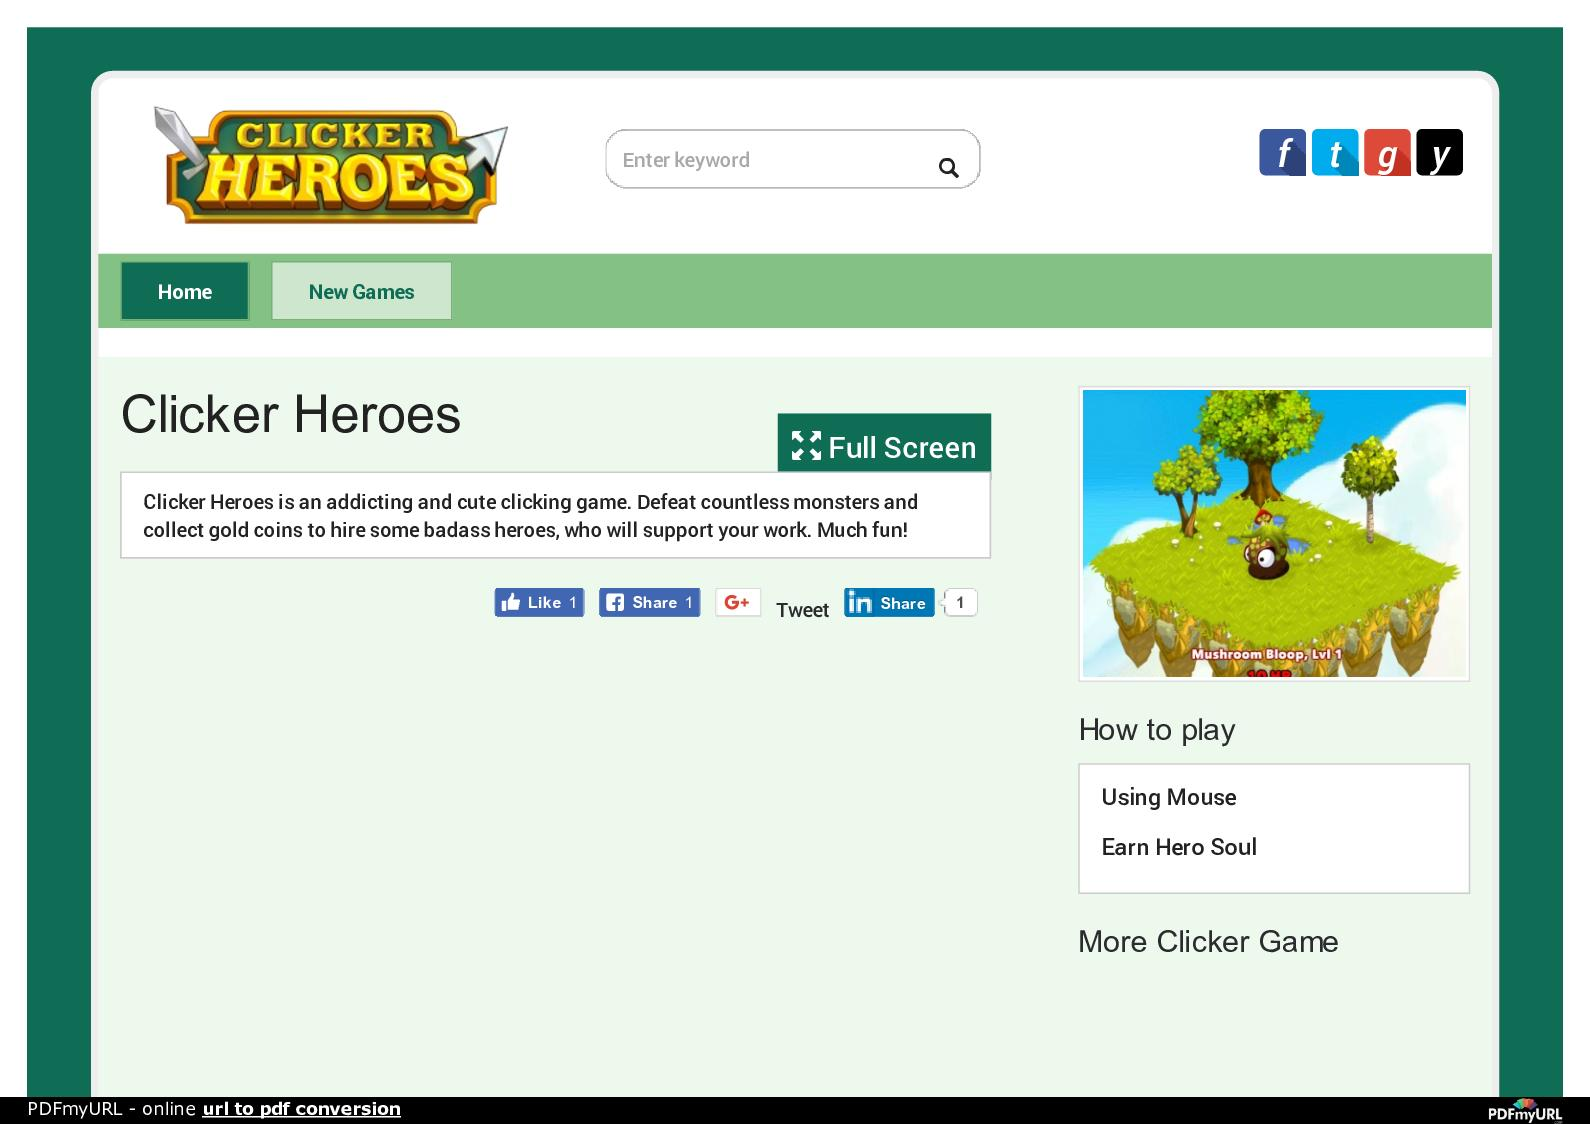 Calaméo - clickerheroes co